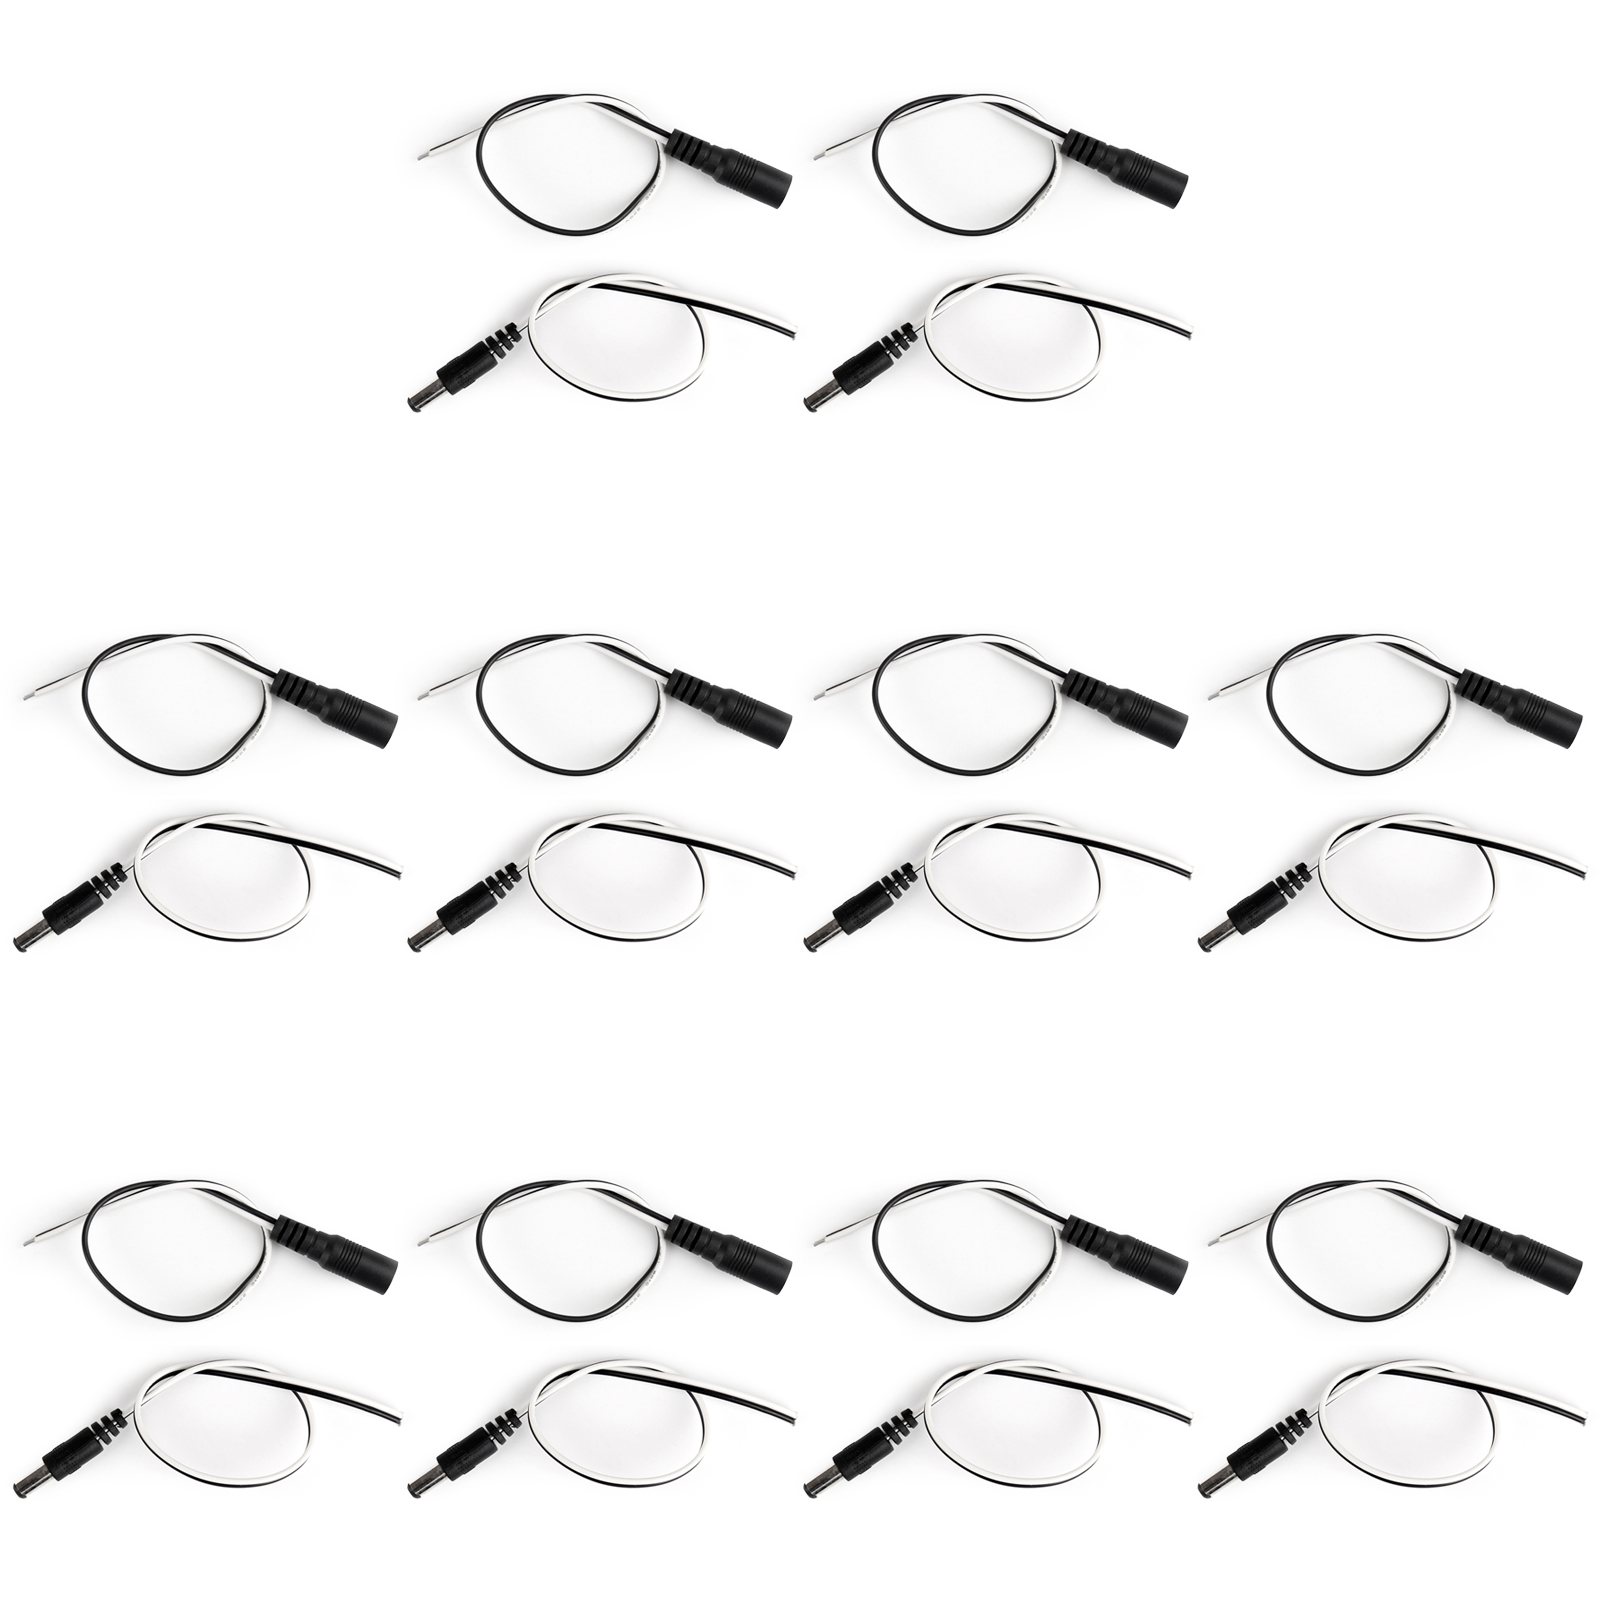 10pair Dc 5 5x2 1mm Male Female 22awg Pigtail Surveillance